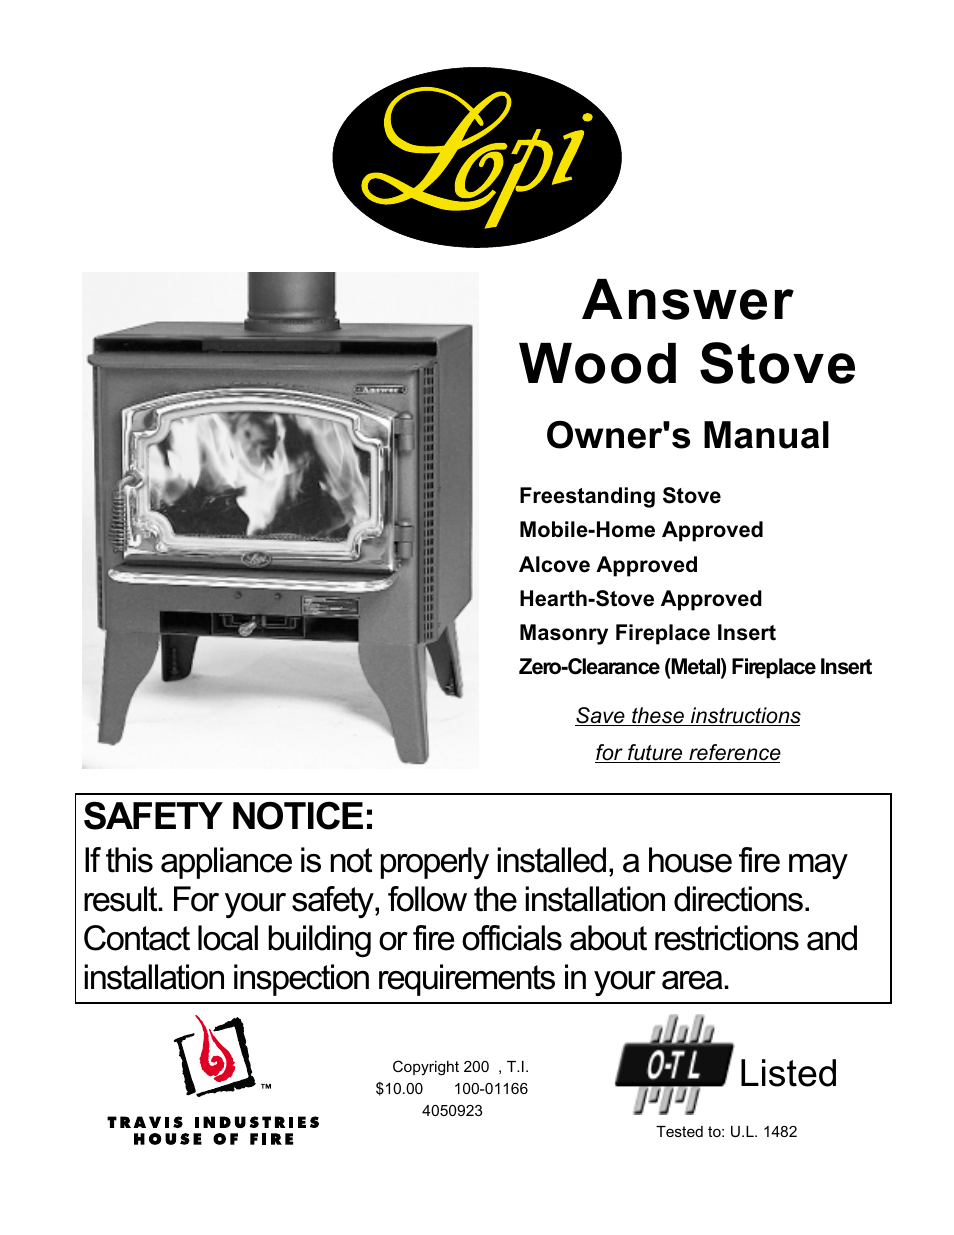 Lopi Answer Wood Stove User Manual | 48 pages